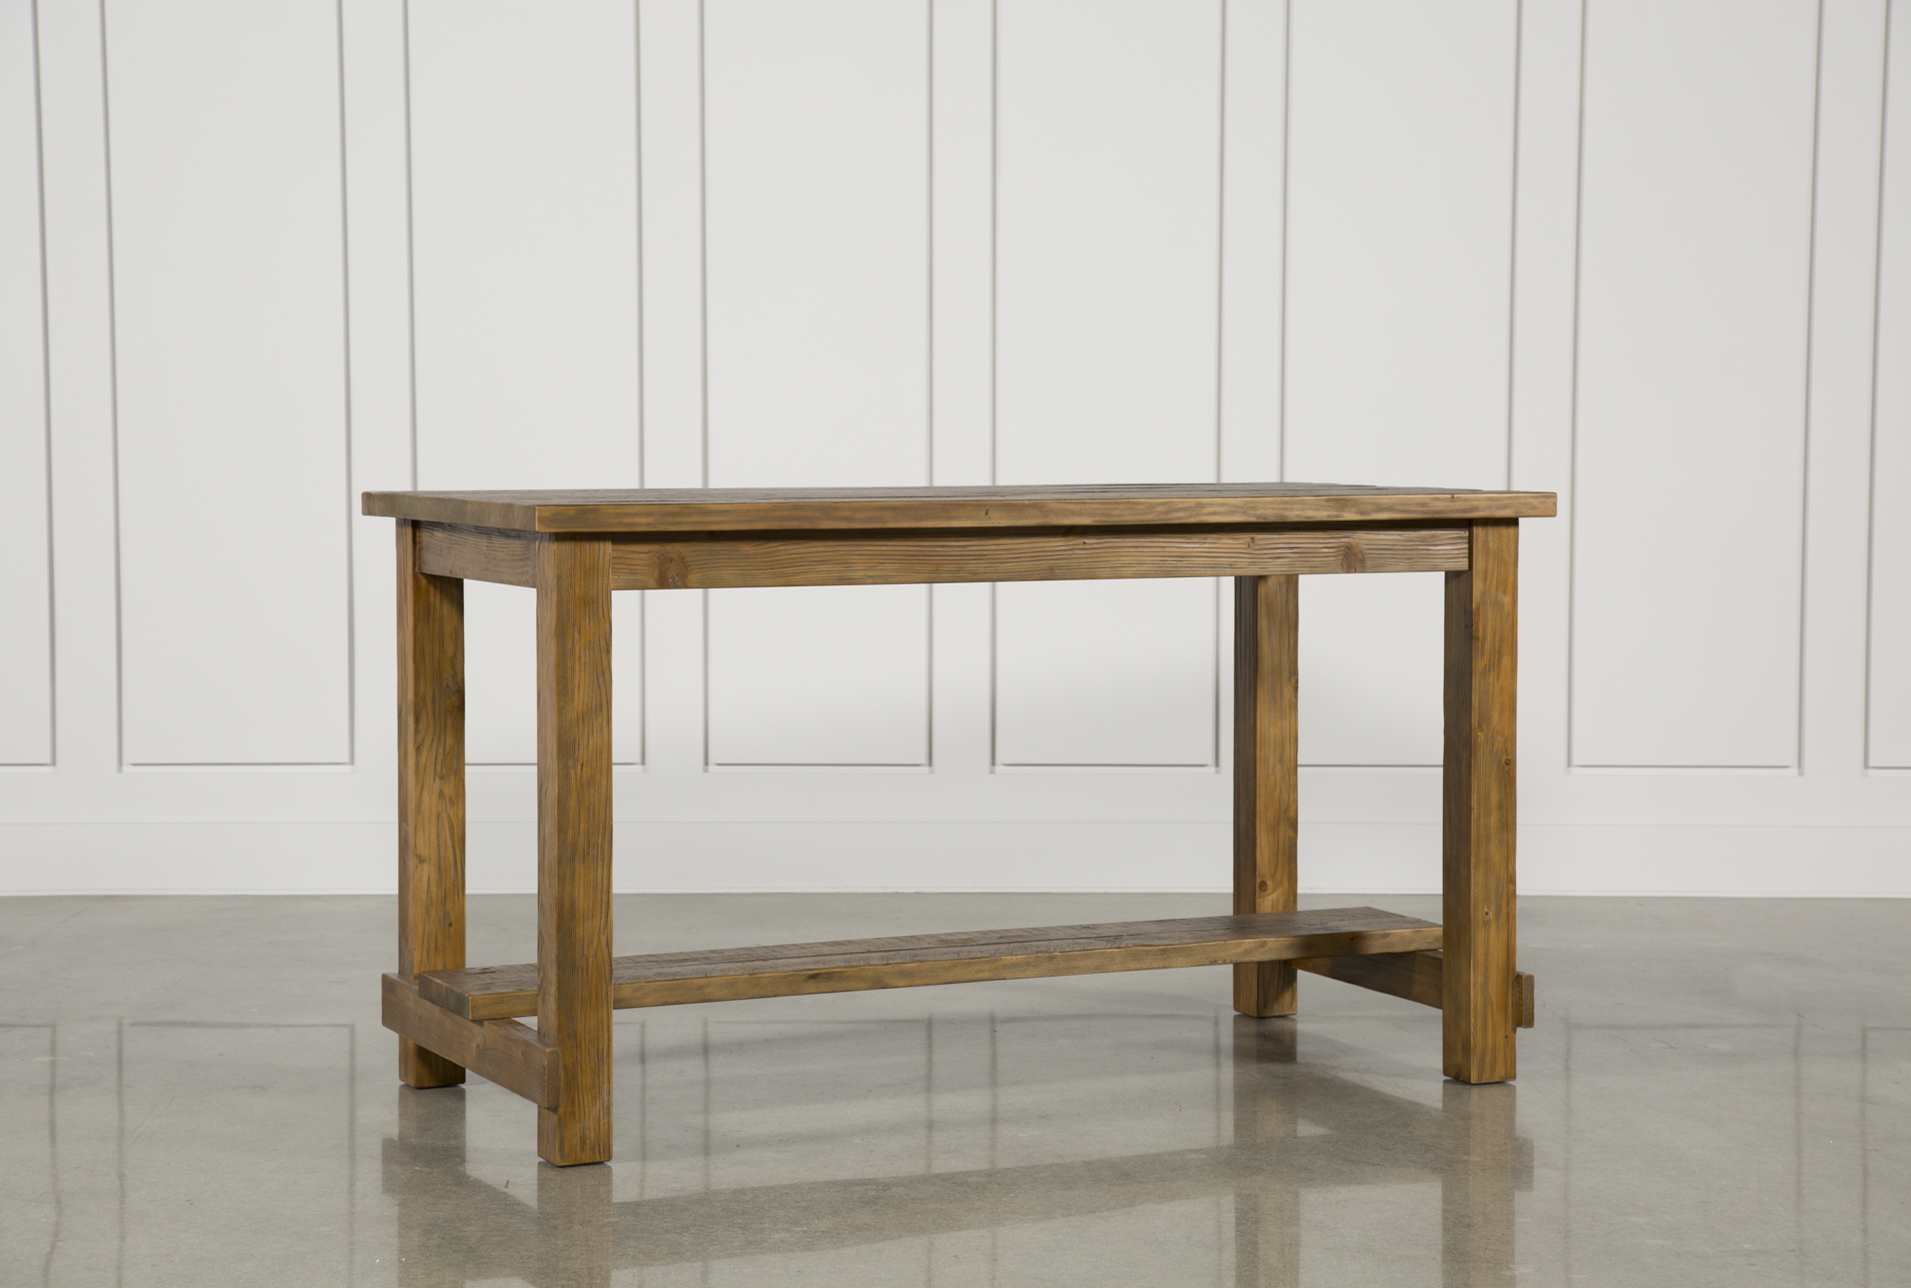 Natural Wood Pub Table (Qty: 1) Has Been Successfully Added To Your Cart.